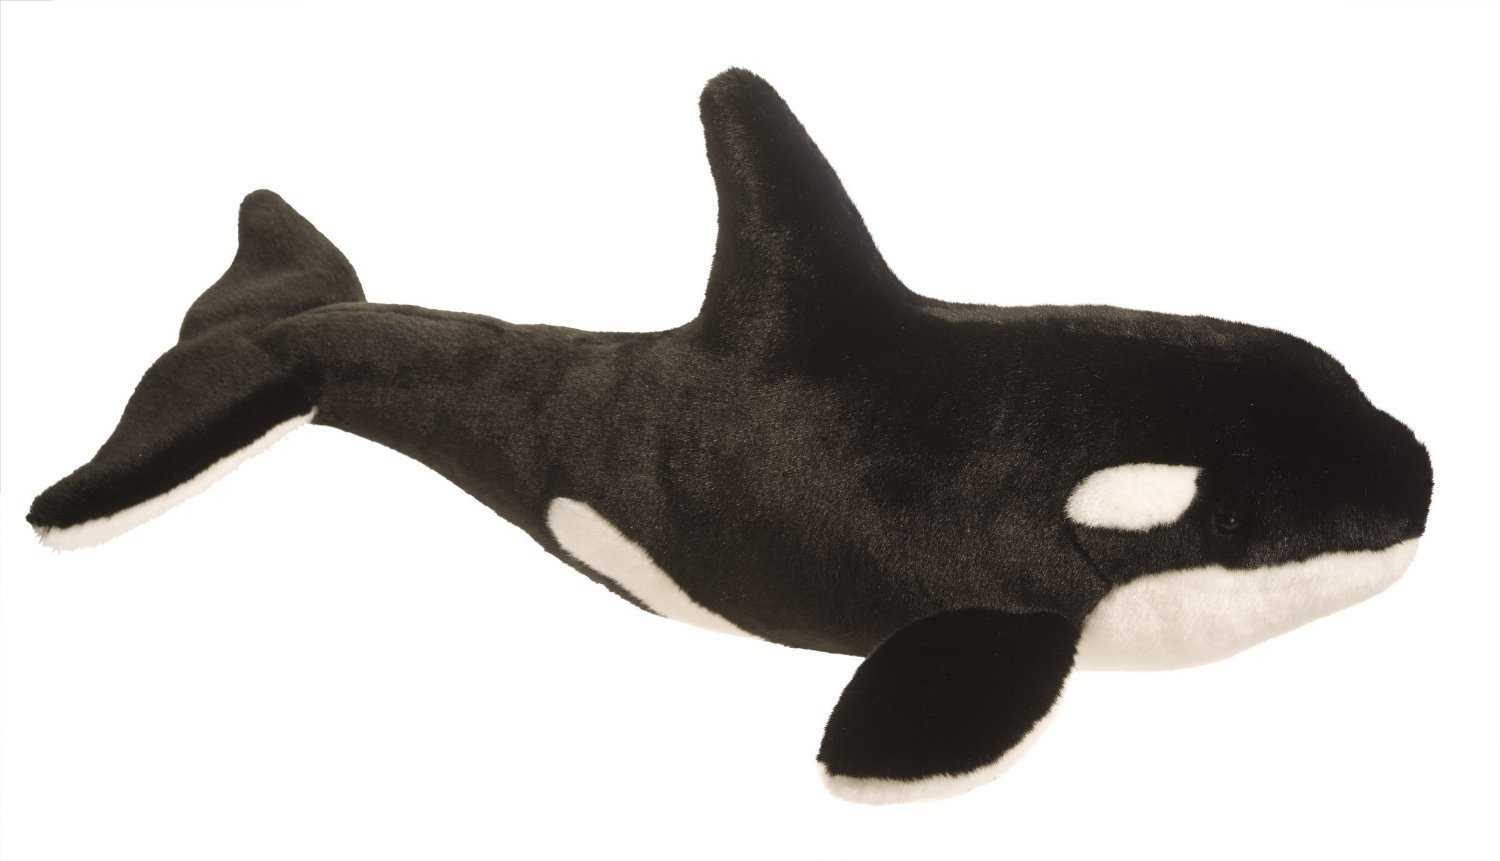 "Orca Whale Plush Toy 24"" Long, Douglas By Douglas Cuddle Toys Ship from US by"